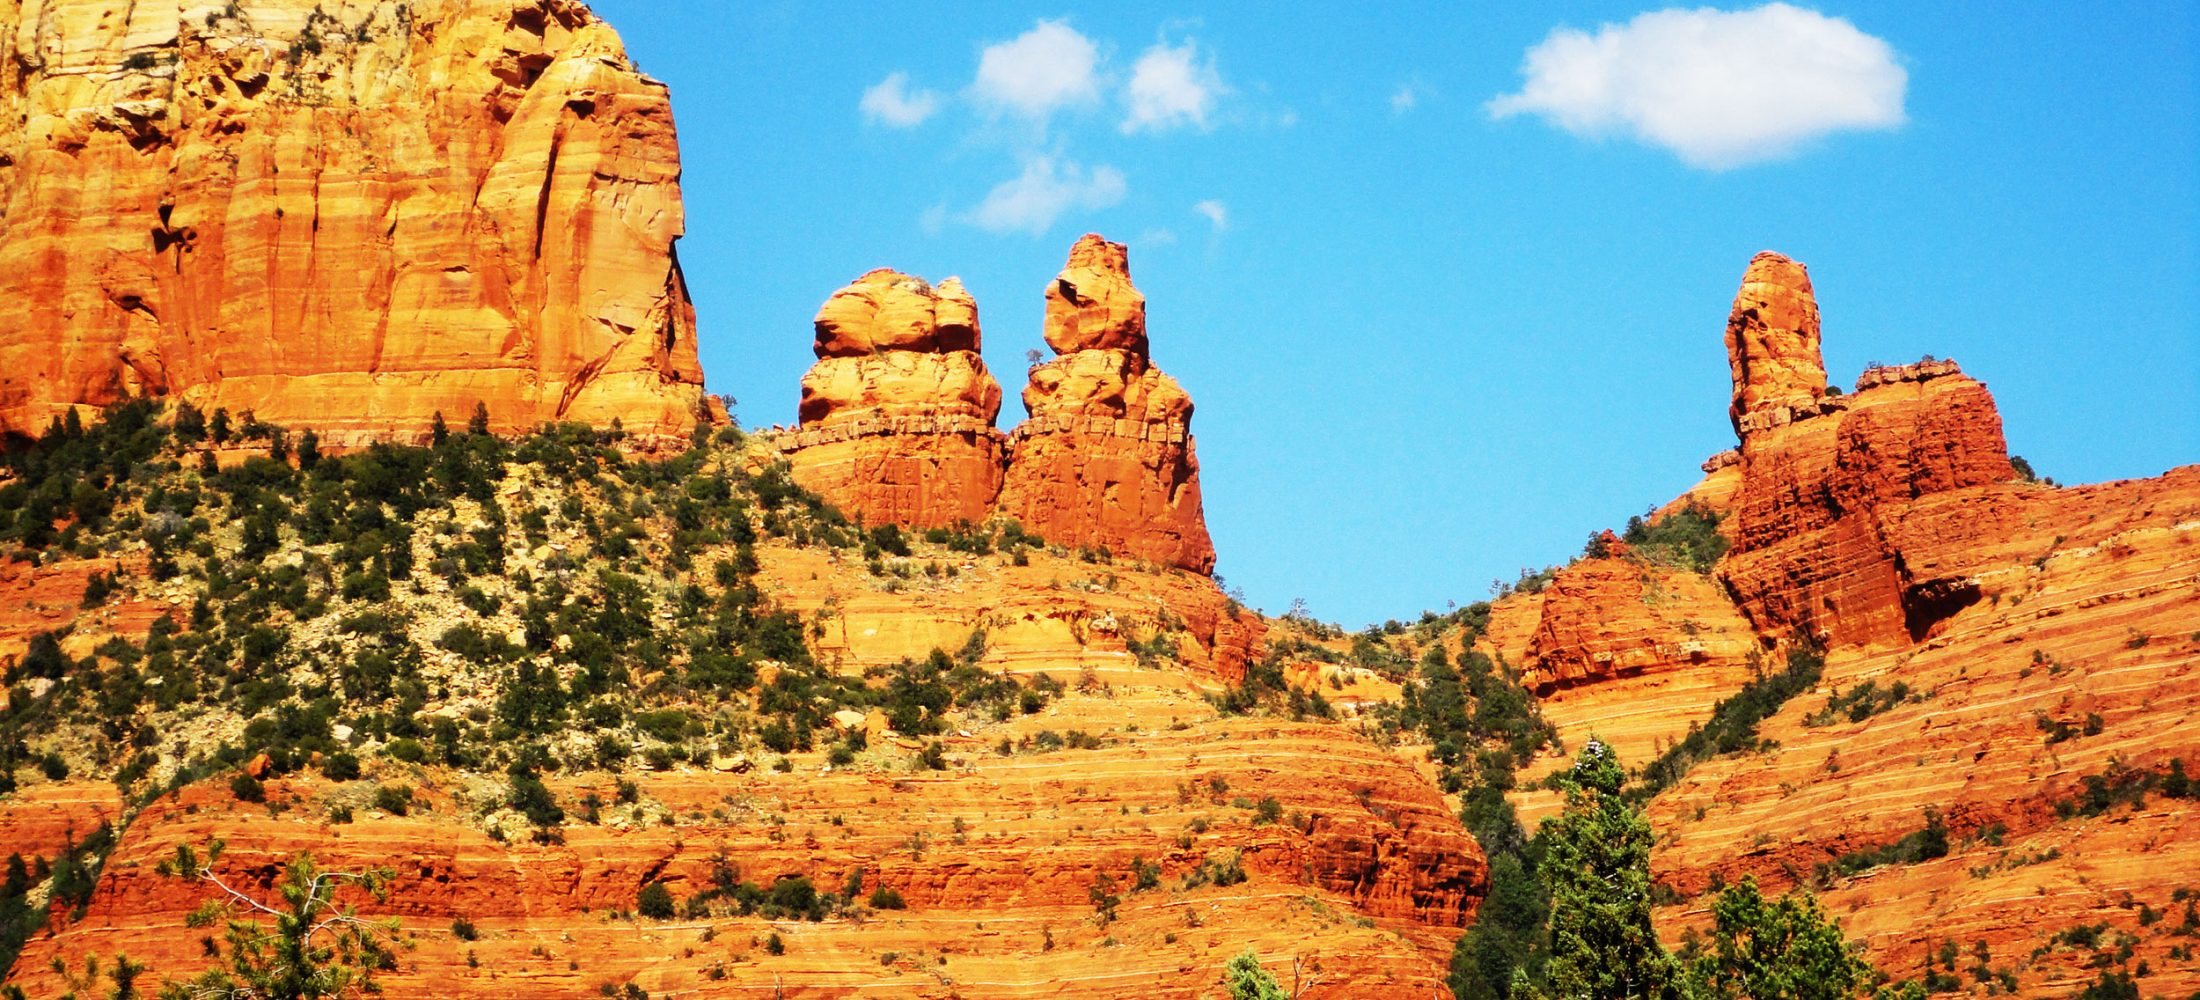 The Red Rocks of Sedona